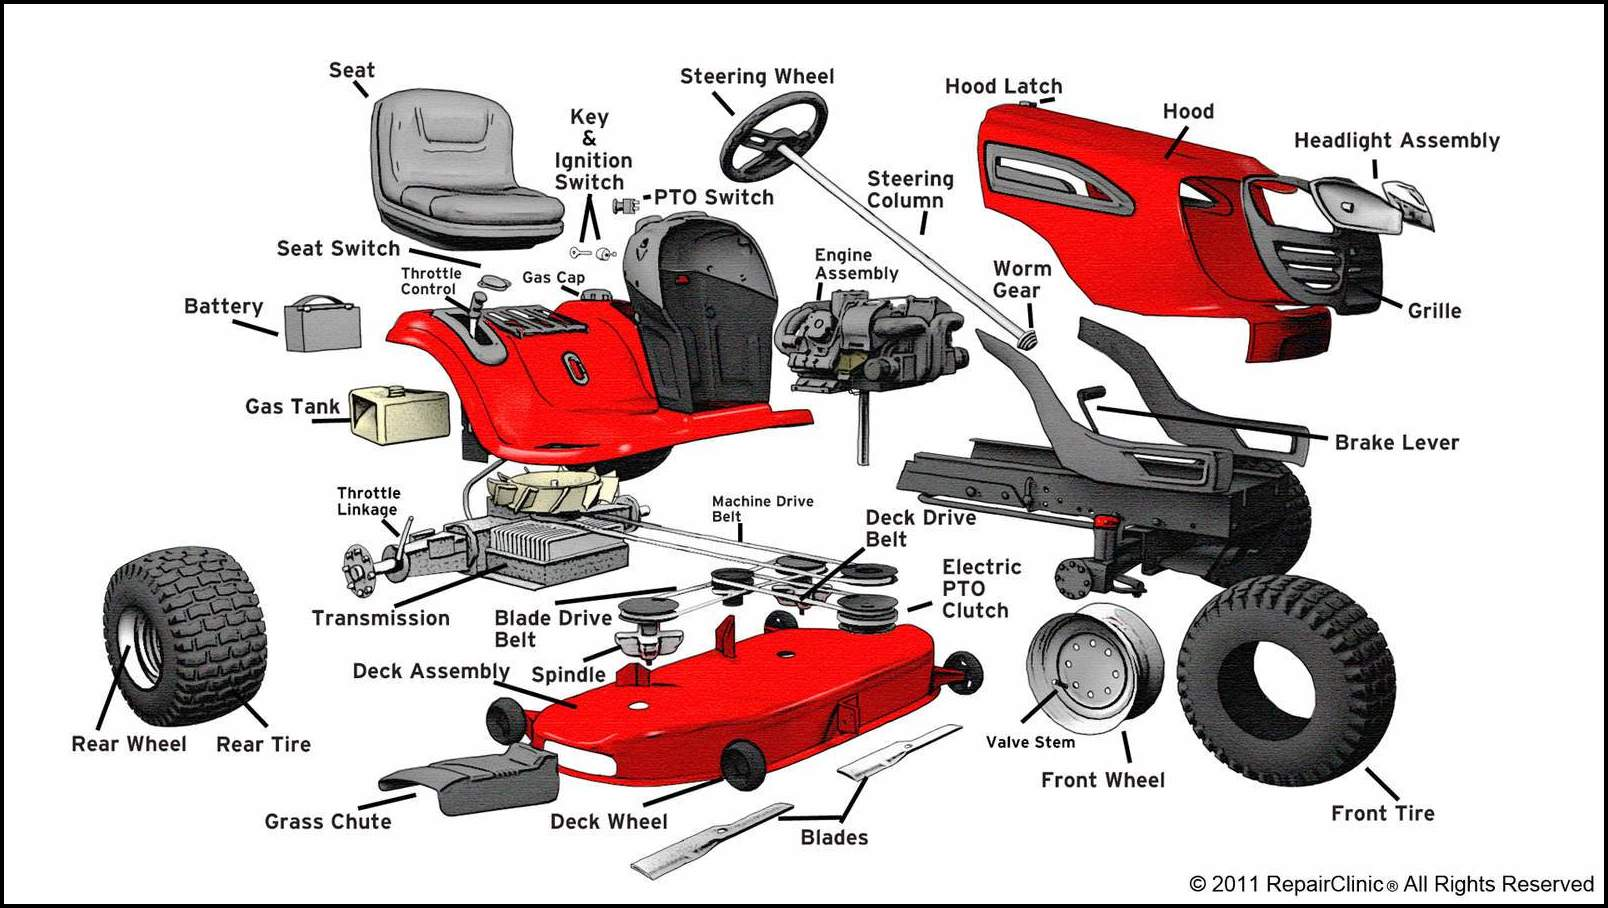 Wiring Diagram For Craftsman Riding Lawn Mower